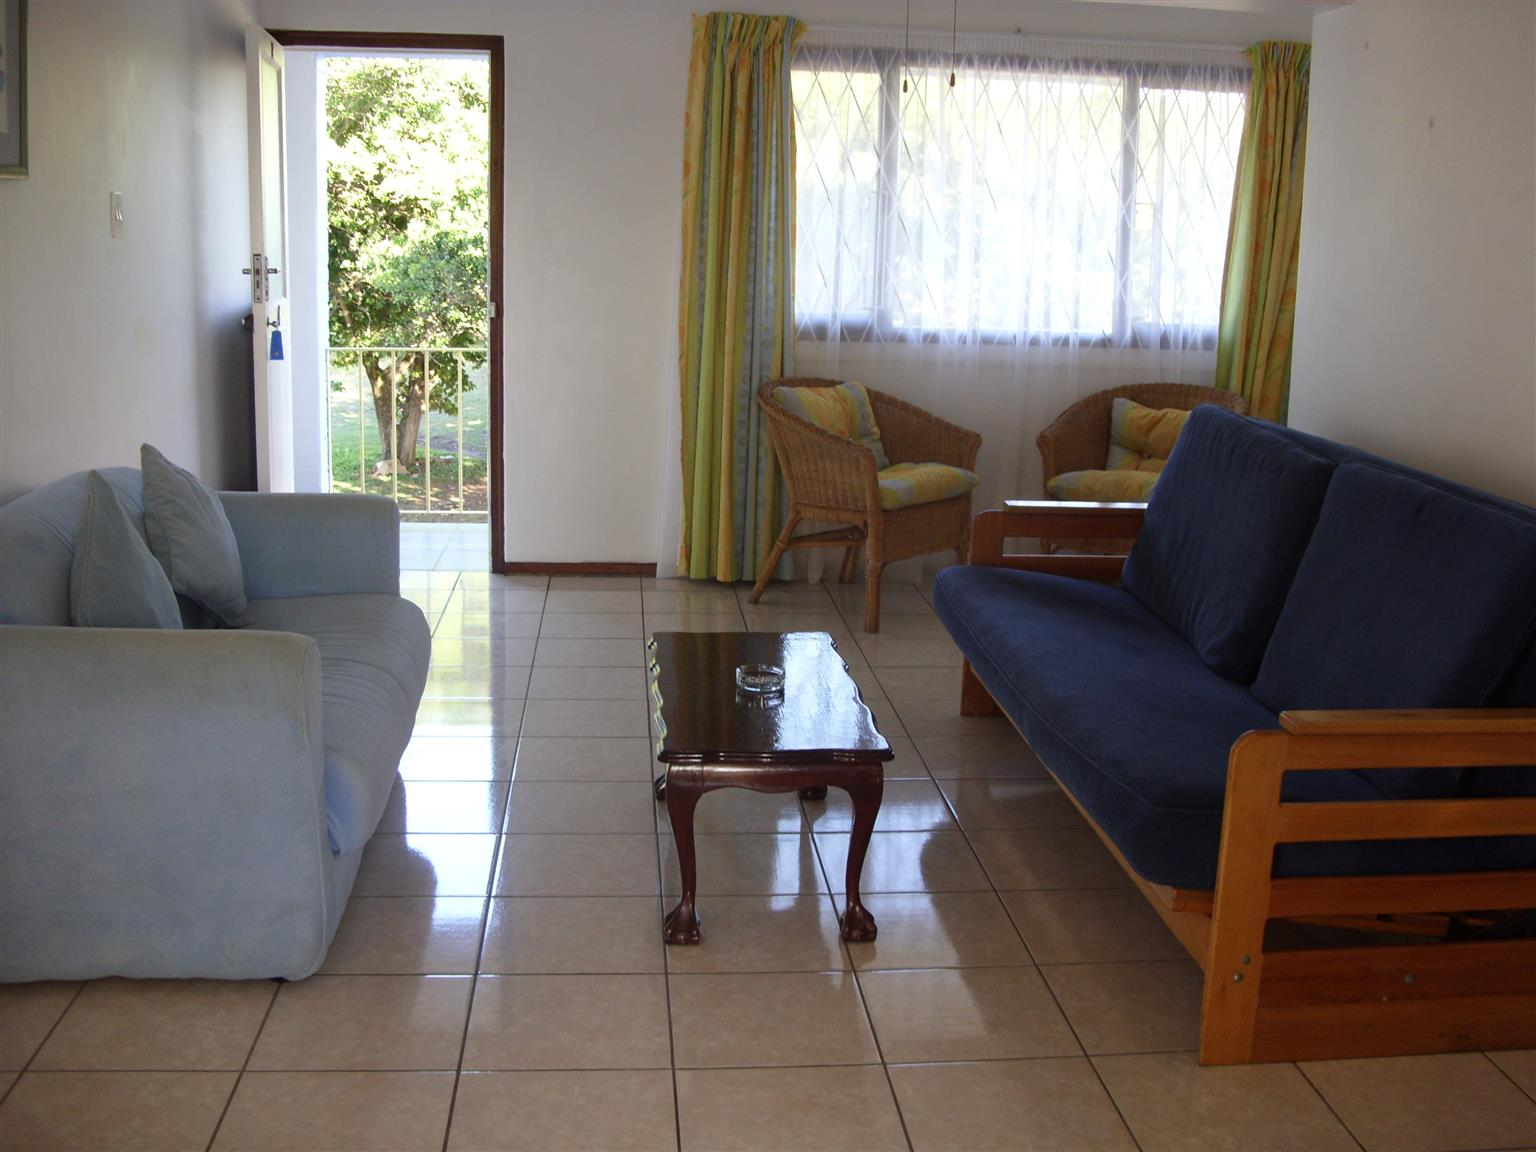 SHELLY BEACH FURNISHED 1 BEDROOM 1ST FLOOR FLAT IMMEDIATE OCC R4500 PM ST MICHAELS-ON-SEA UVONGO